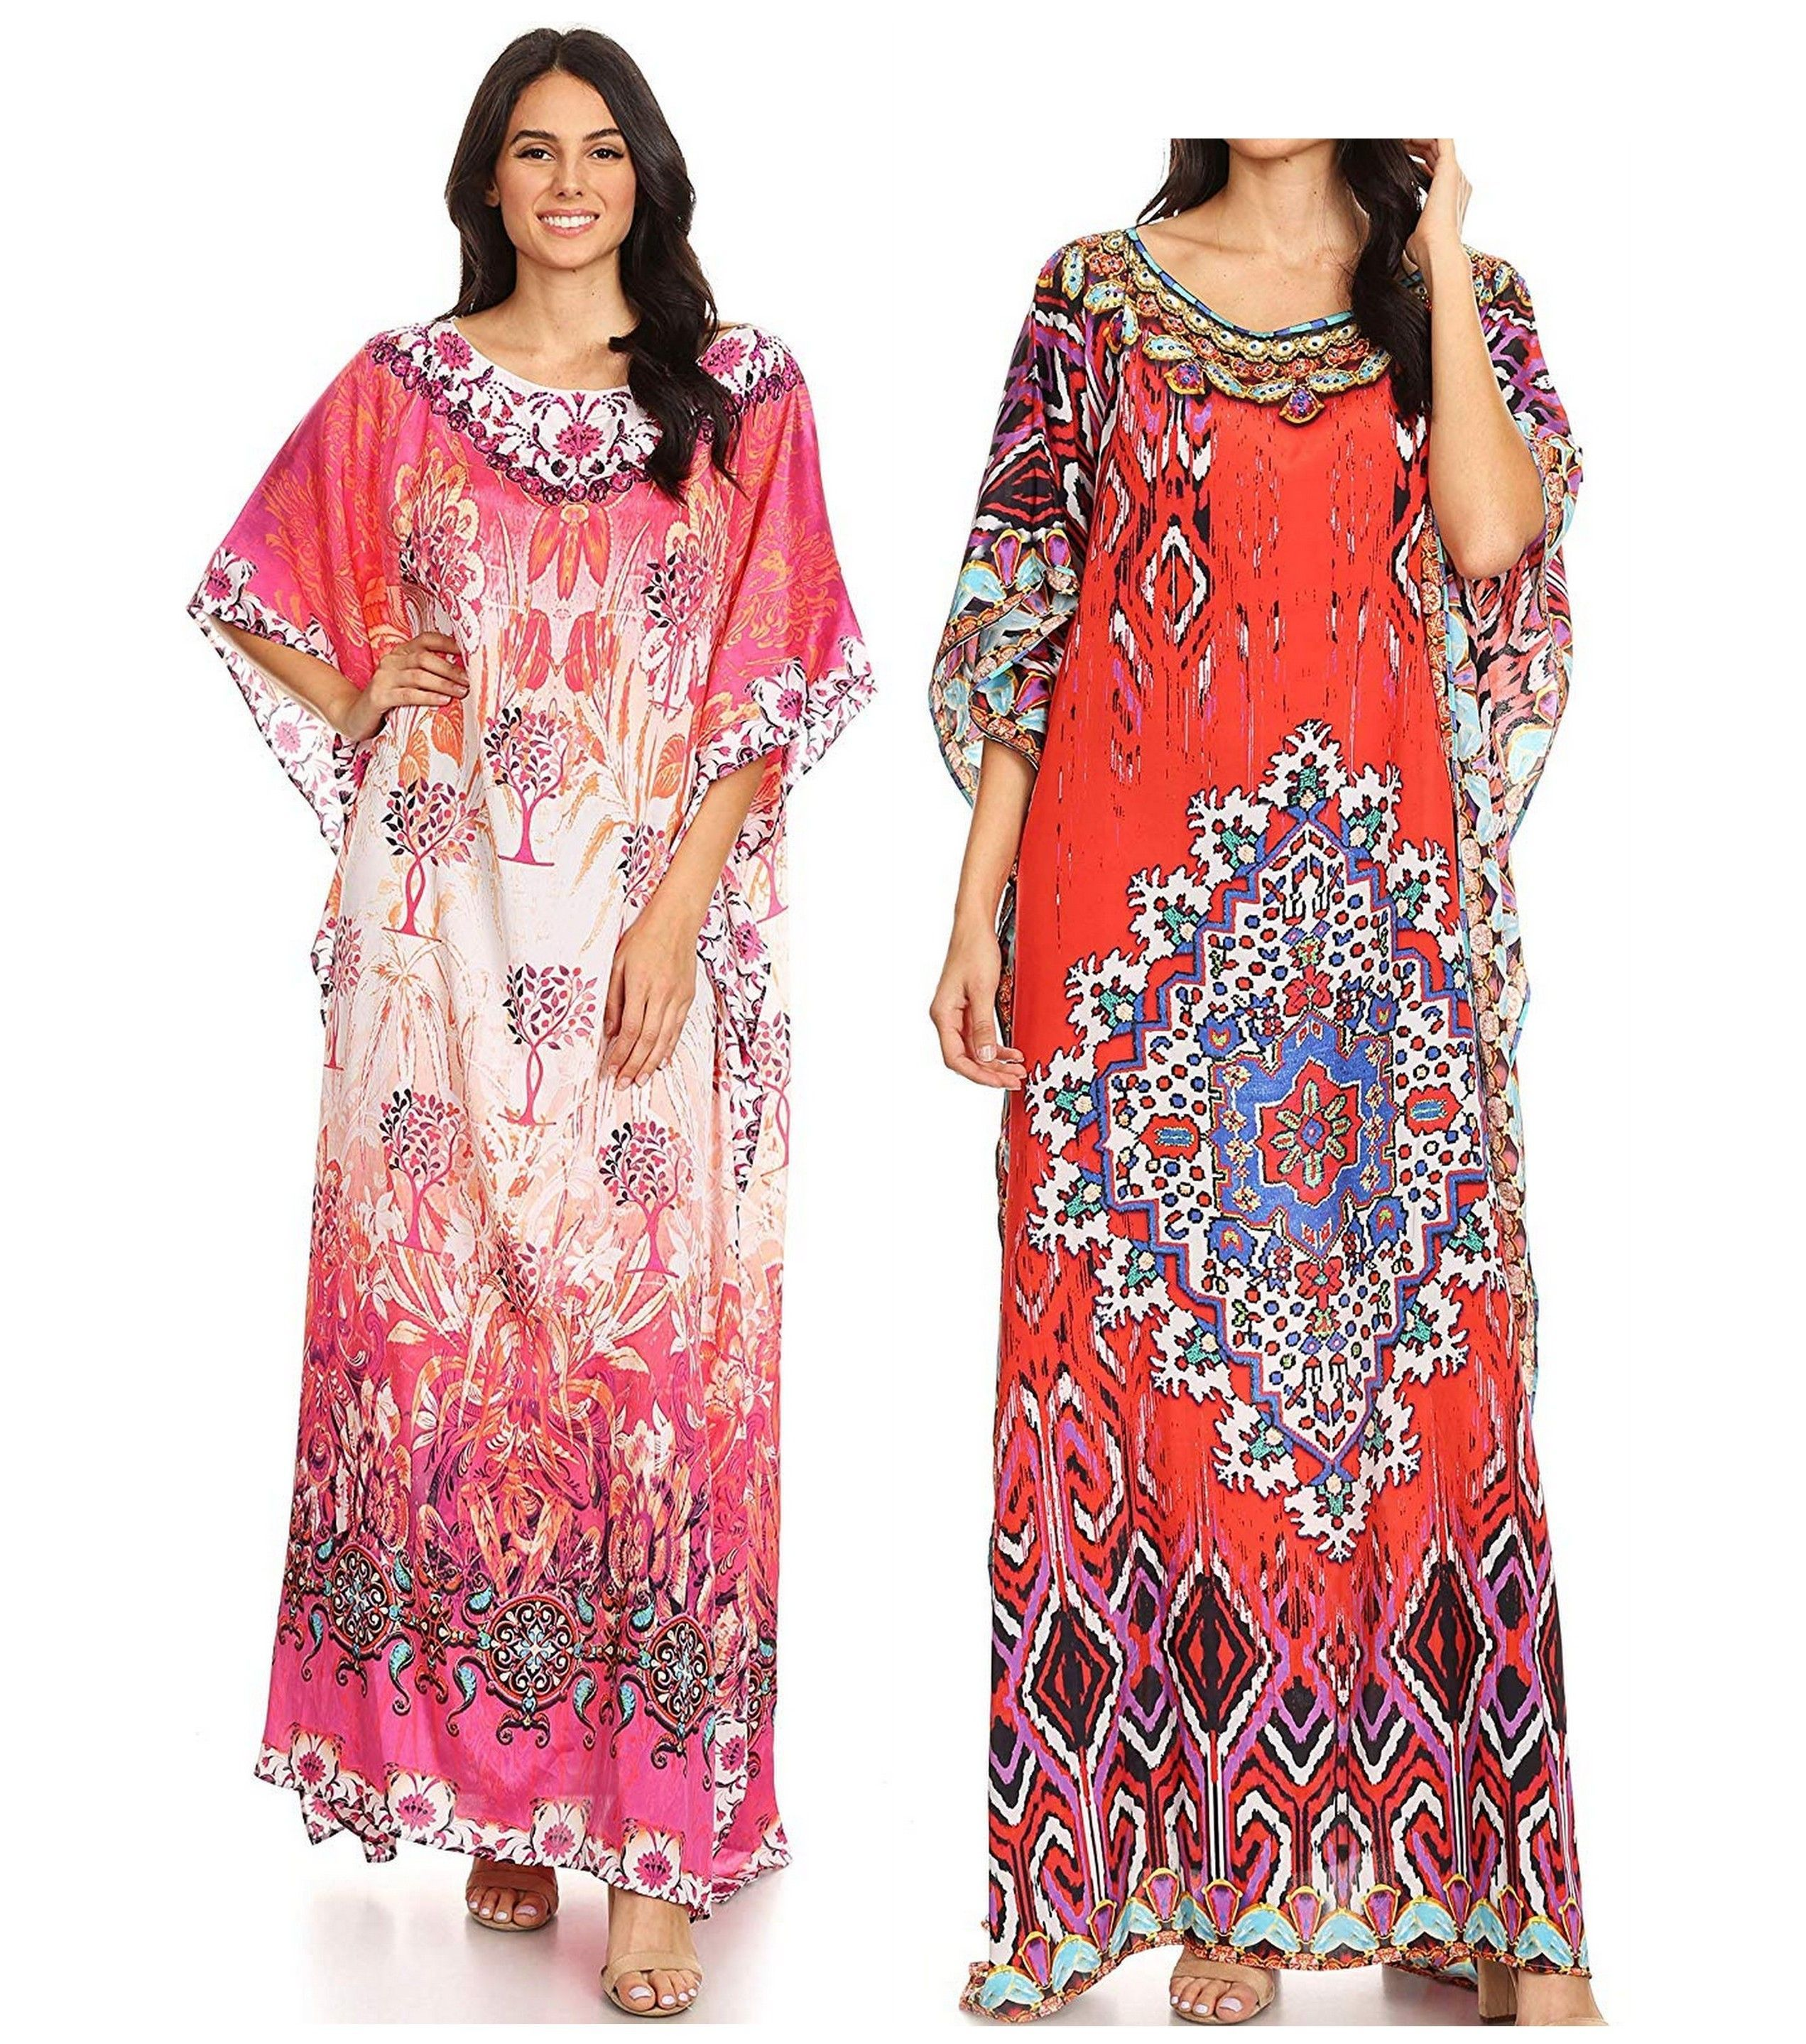 ae8010b8148 This lovely kaftan dress features a boat-neck and generous sleeve openings.  Also